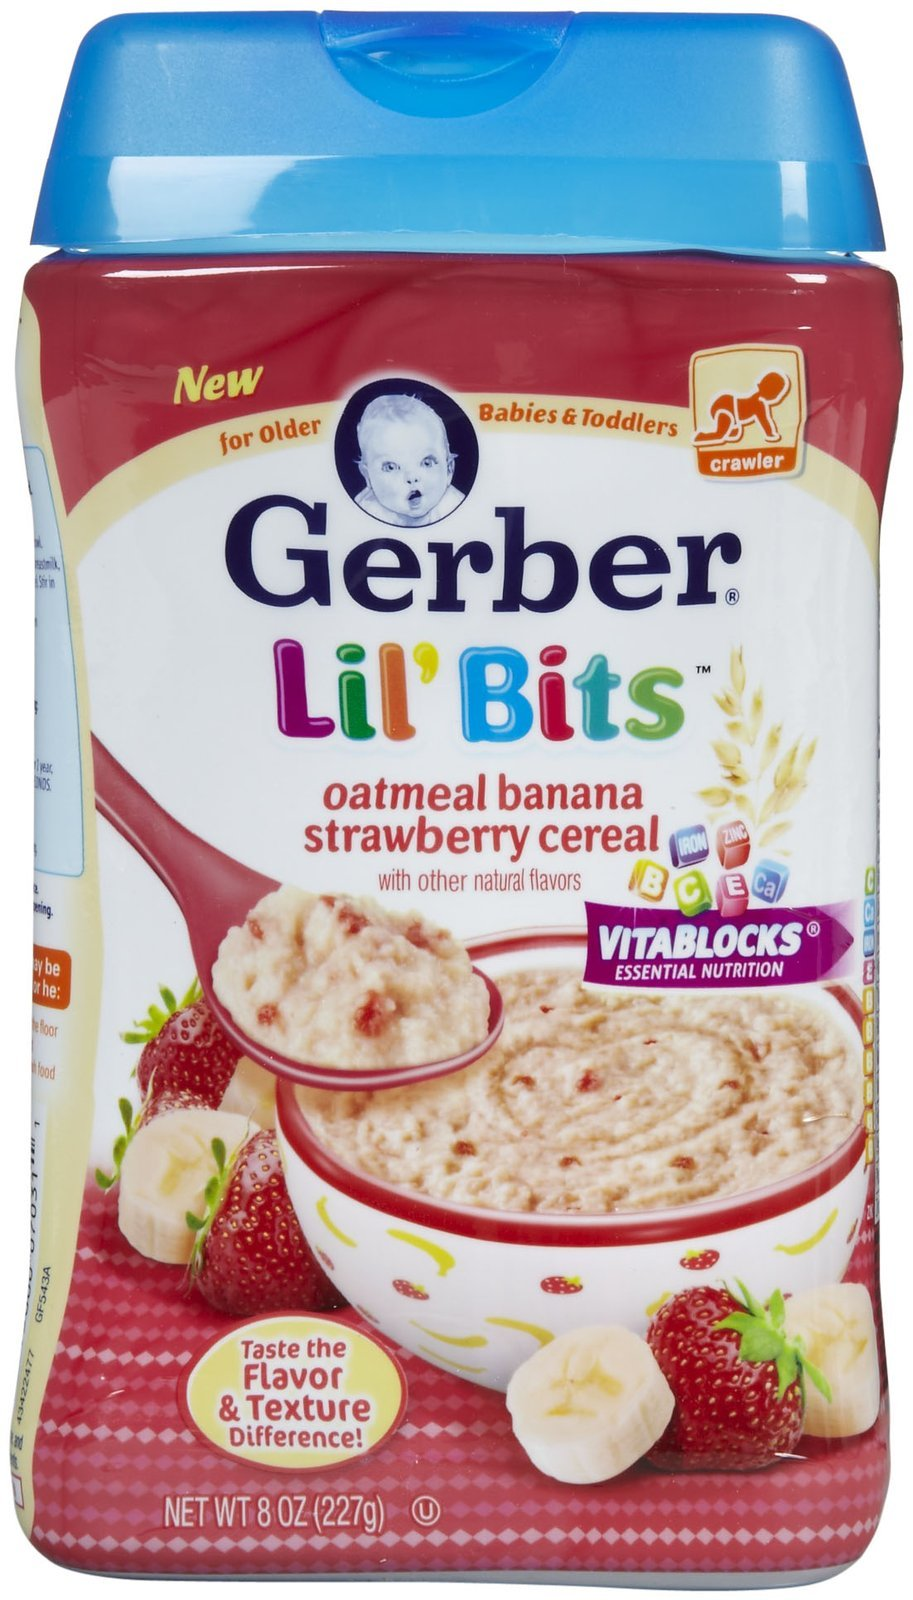 Gerber Lil' Bits Oatmeal Banana Strawberry Cereal 8 OZ (Pack of 18)